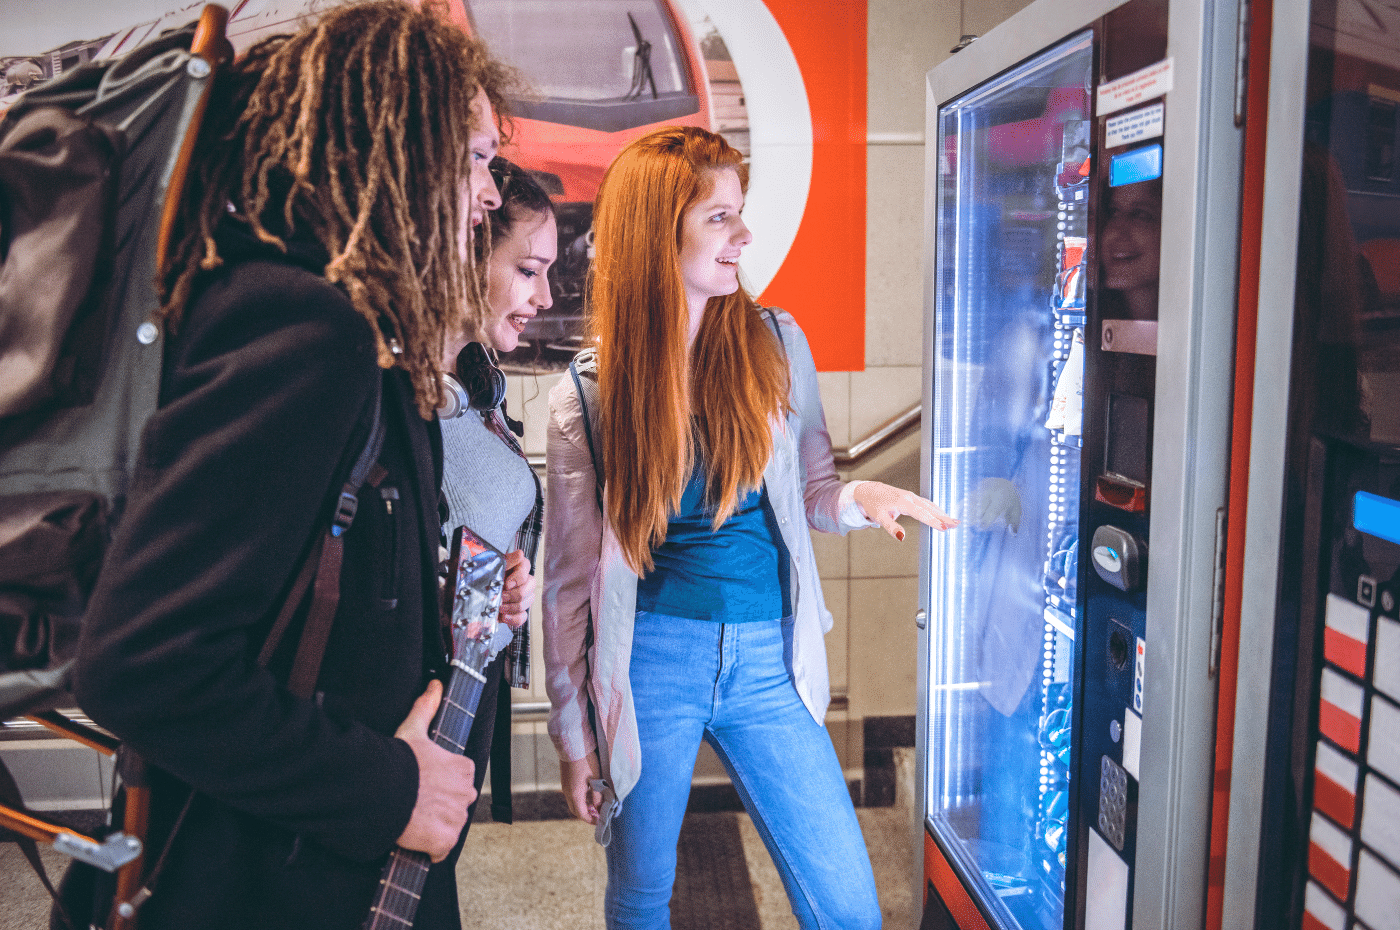 How do I get a vending machine for my business or office